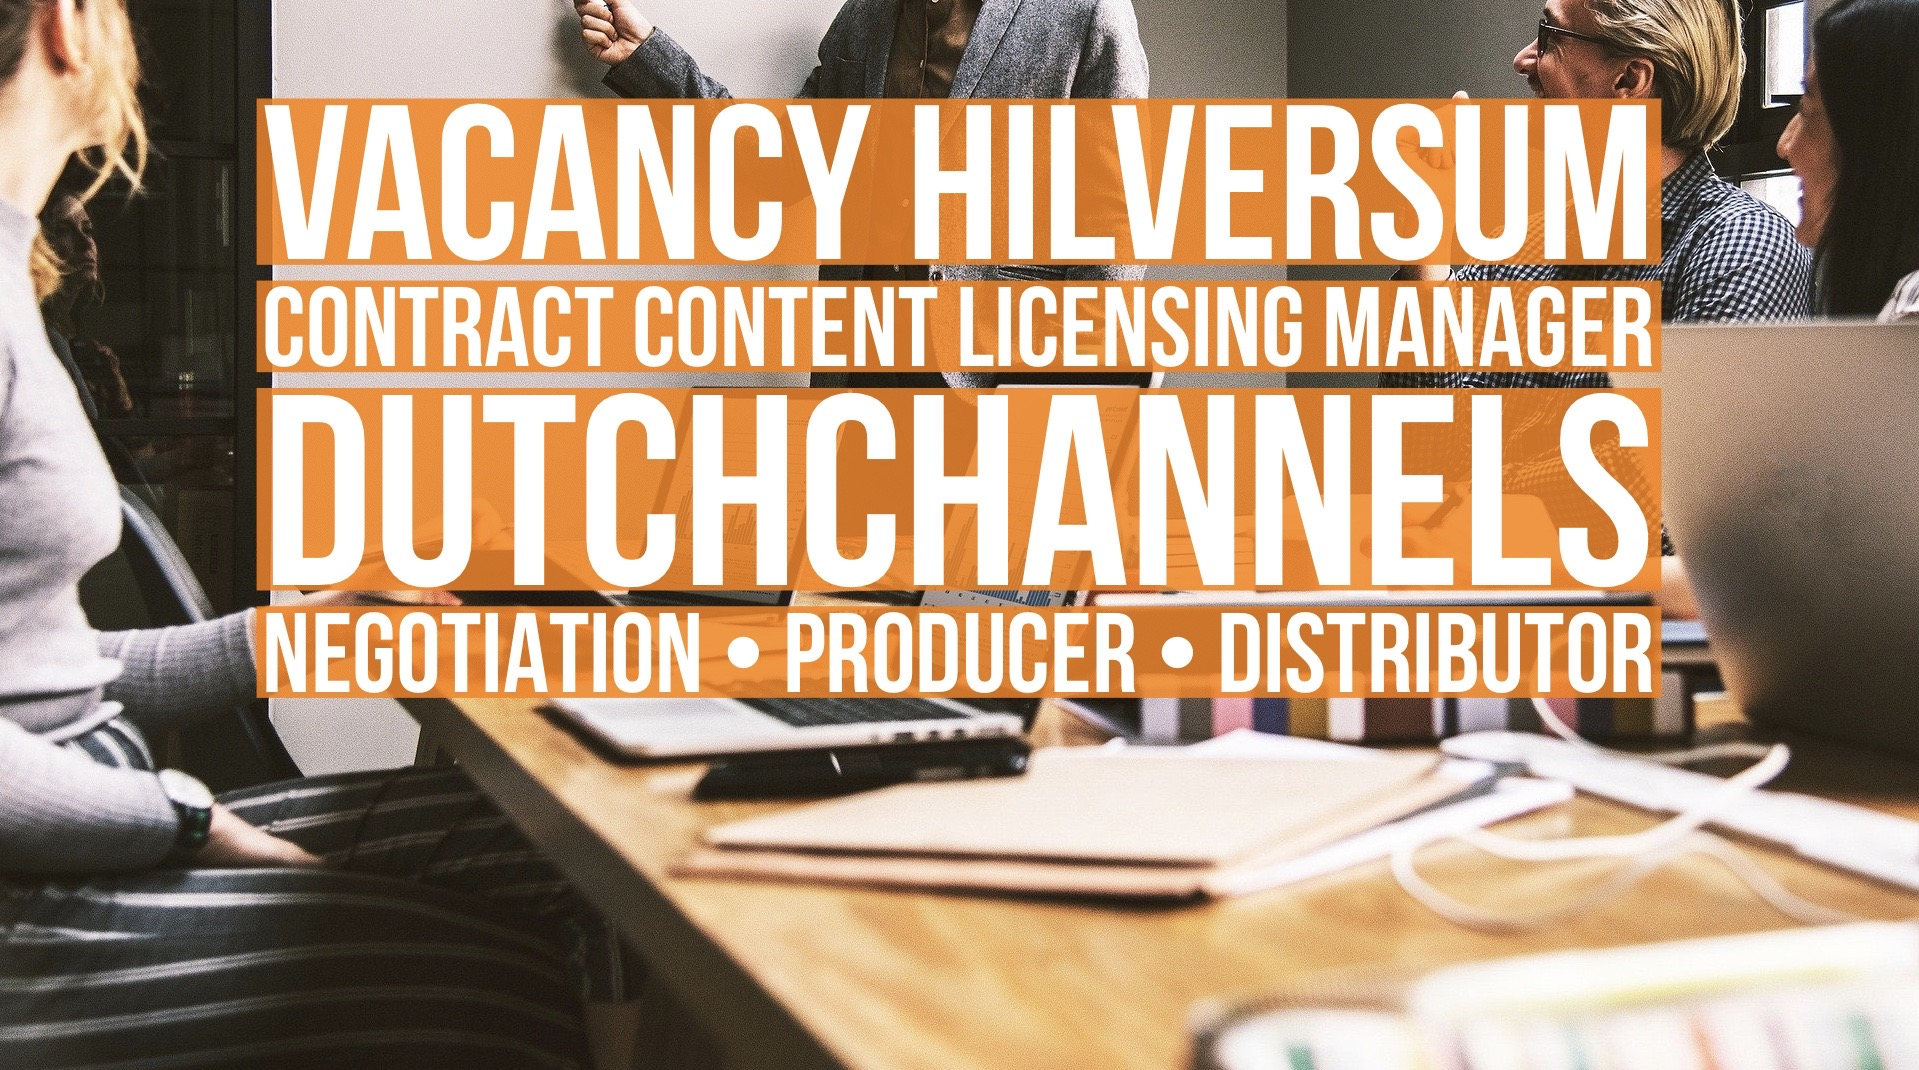 Contract Content Licensing Manager vacancy DutchChannels Hilversum The Netherlands